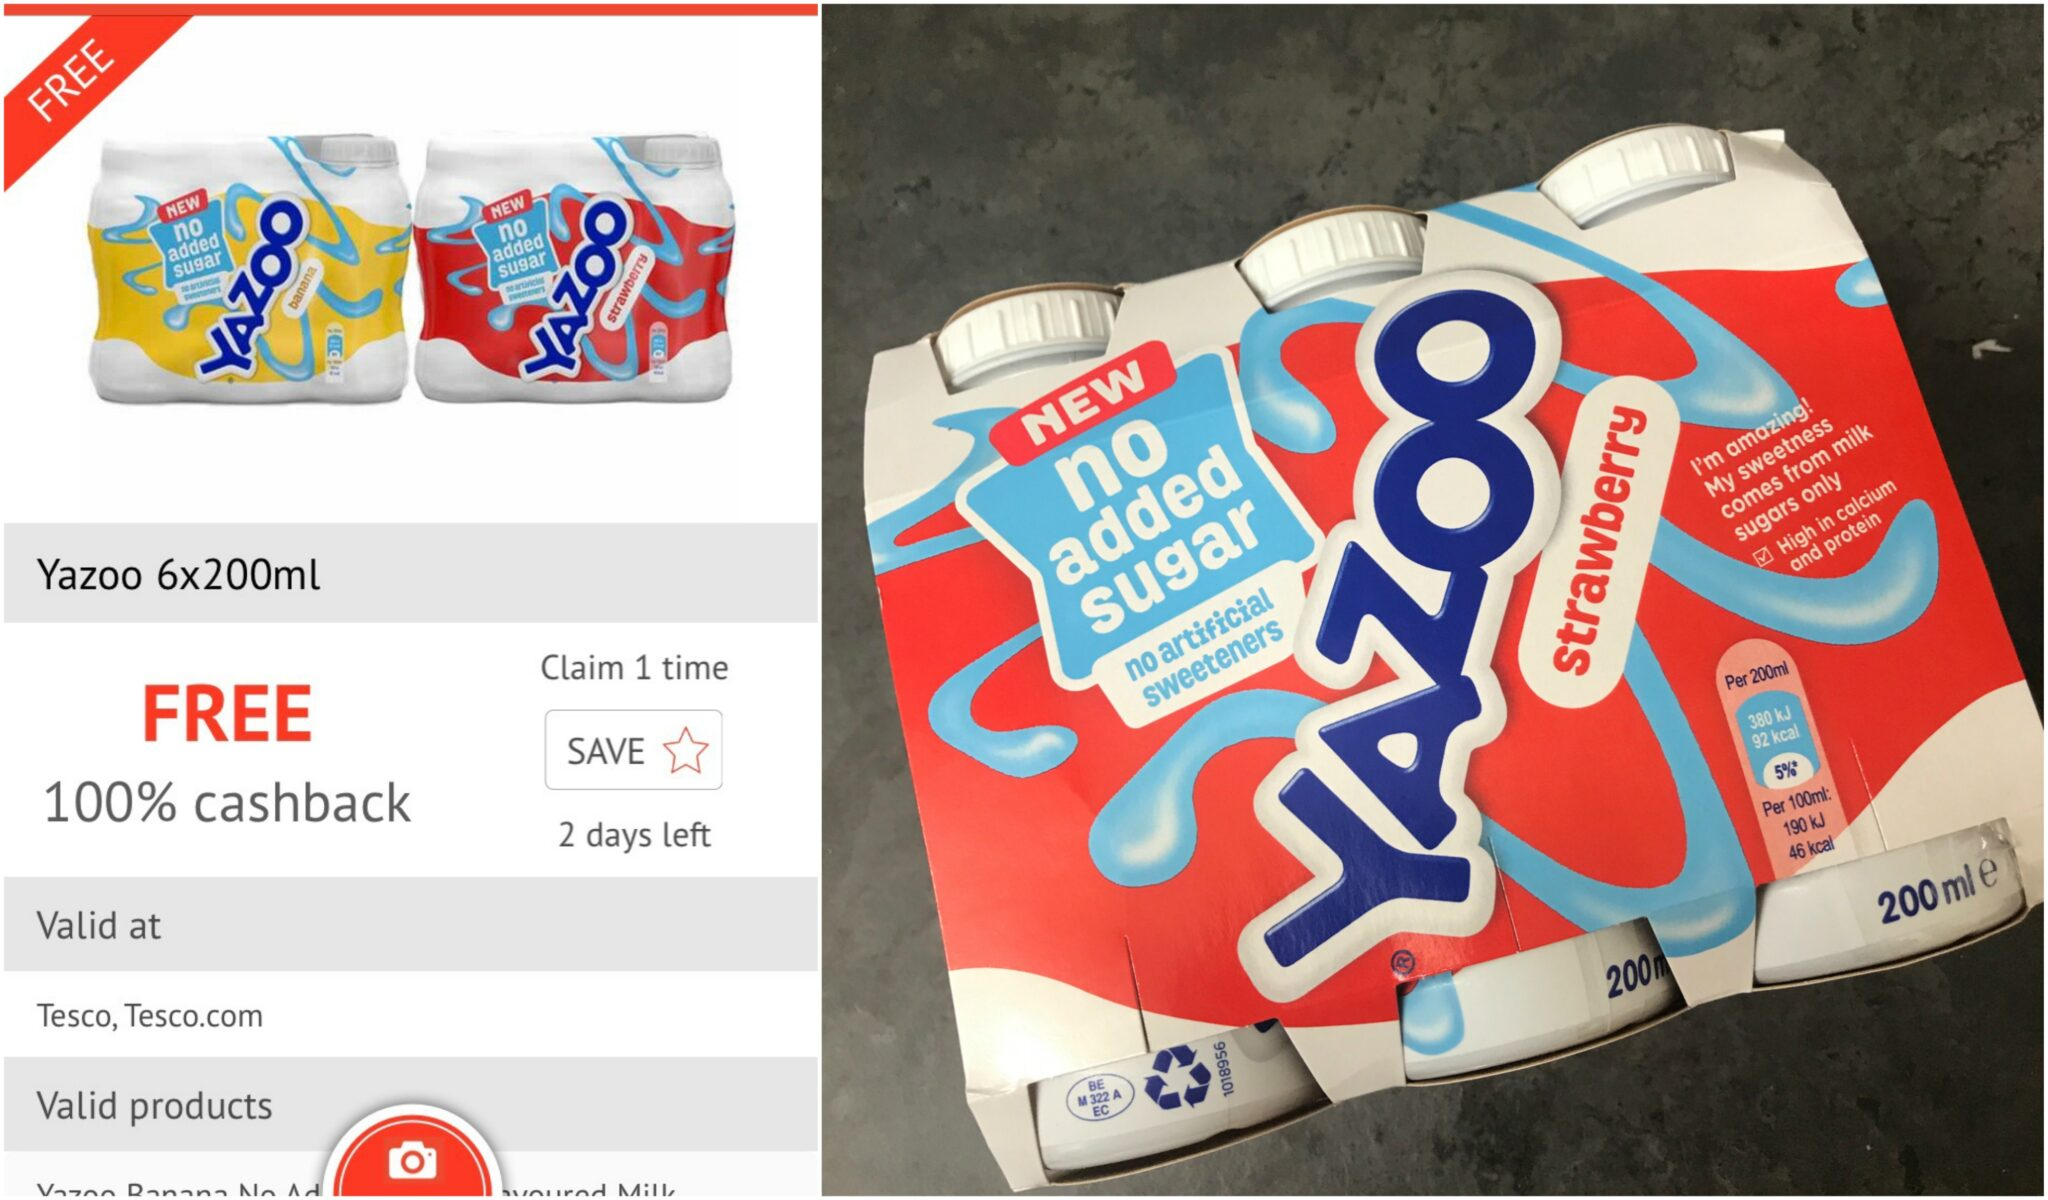 Free pack of Yazoo checkoutsmart app